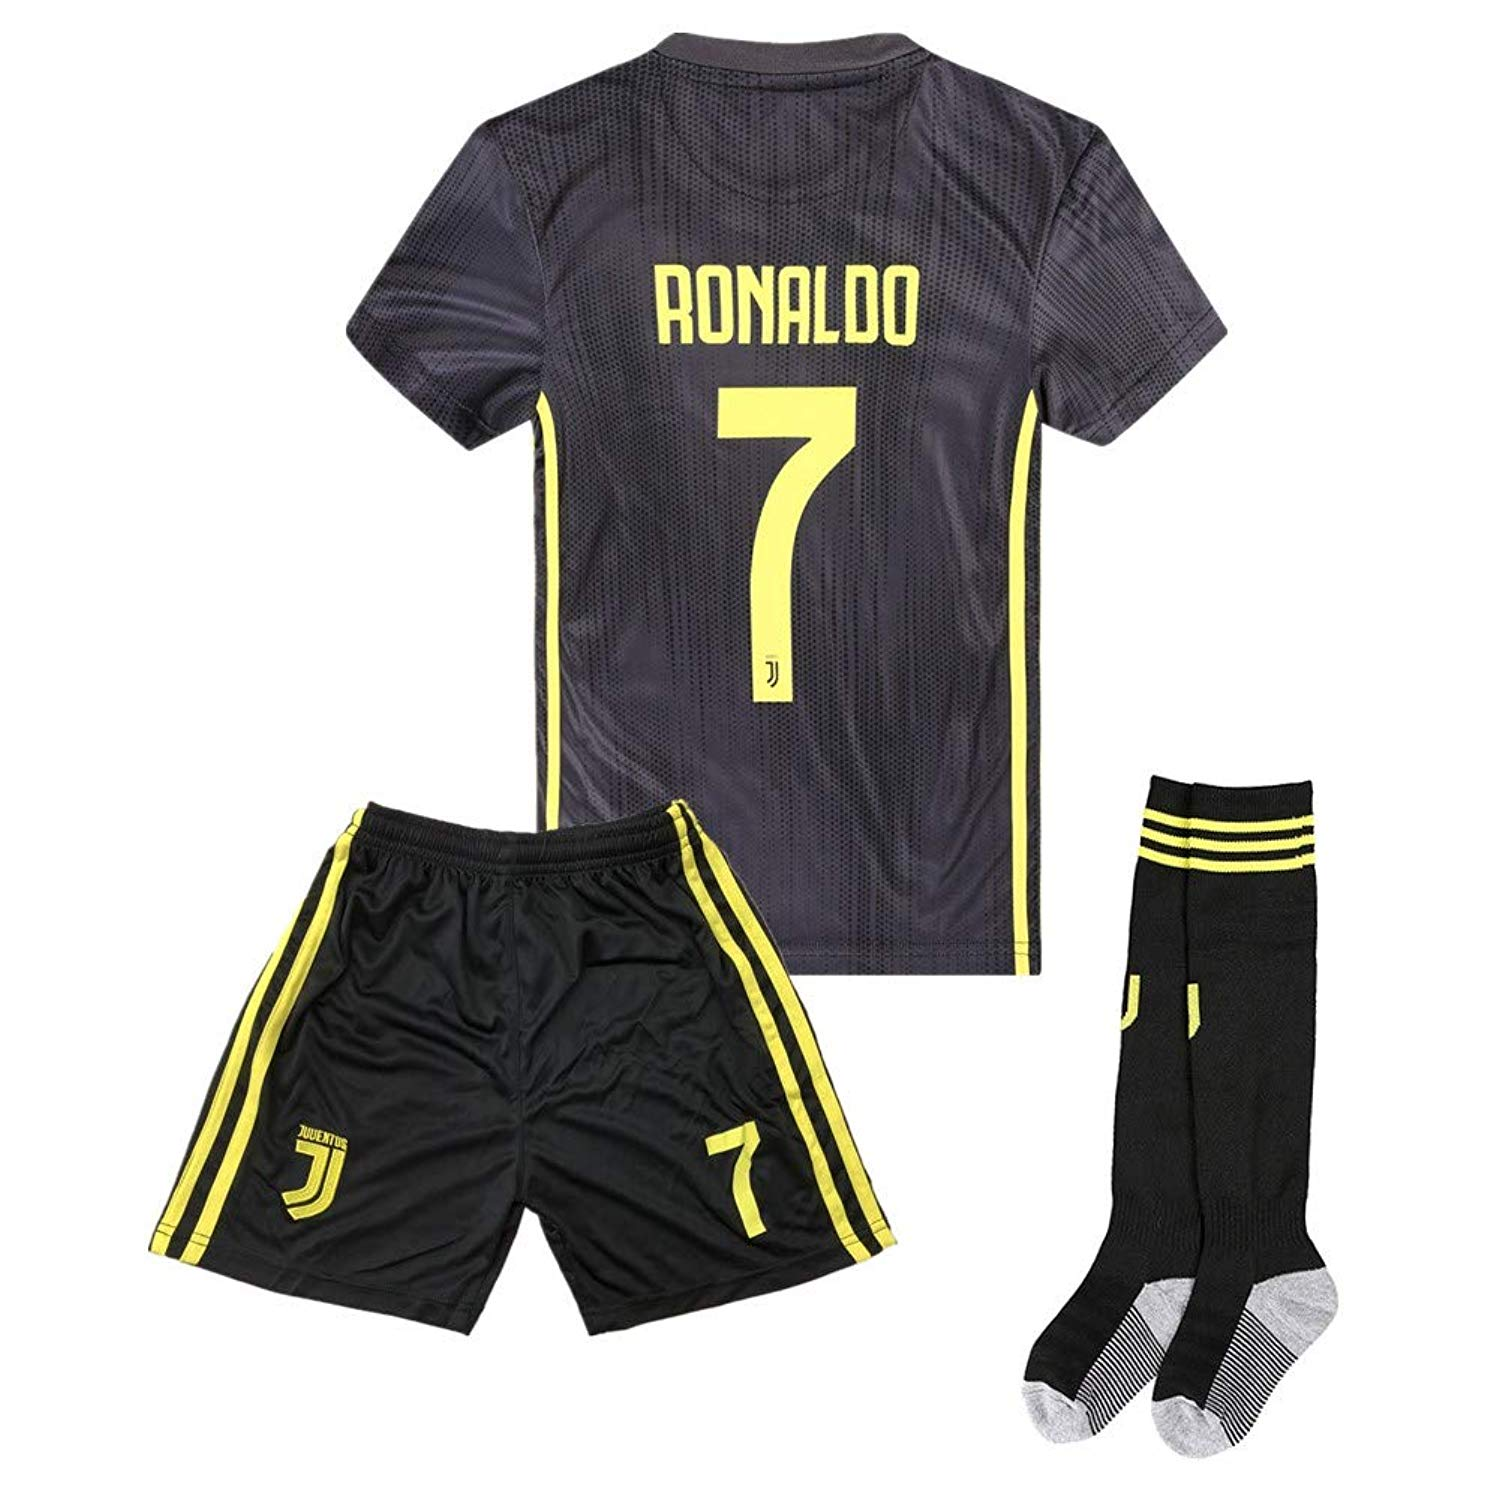 low cost 6fba8 7ce8f Cheap Ronaldo Jersey Kids, find Ronaldo Jersey Kids deals on ...